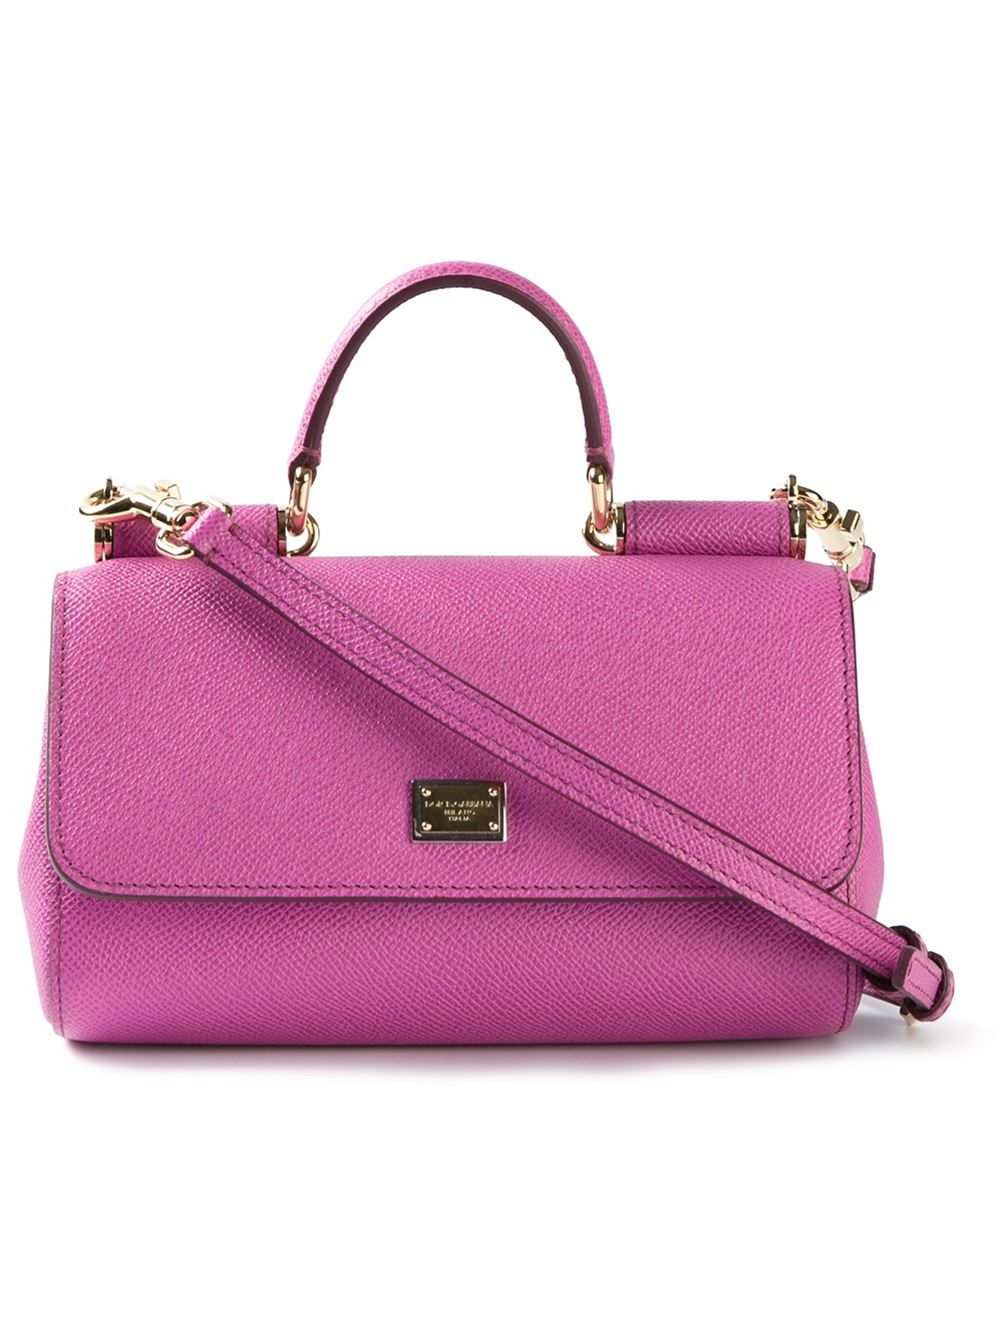 medium Sicily shoulder bag - Pink & Purple Dolce & Gabbana AjExl